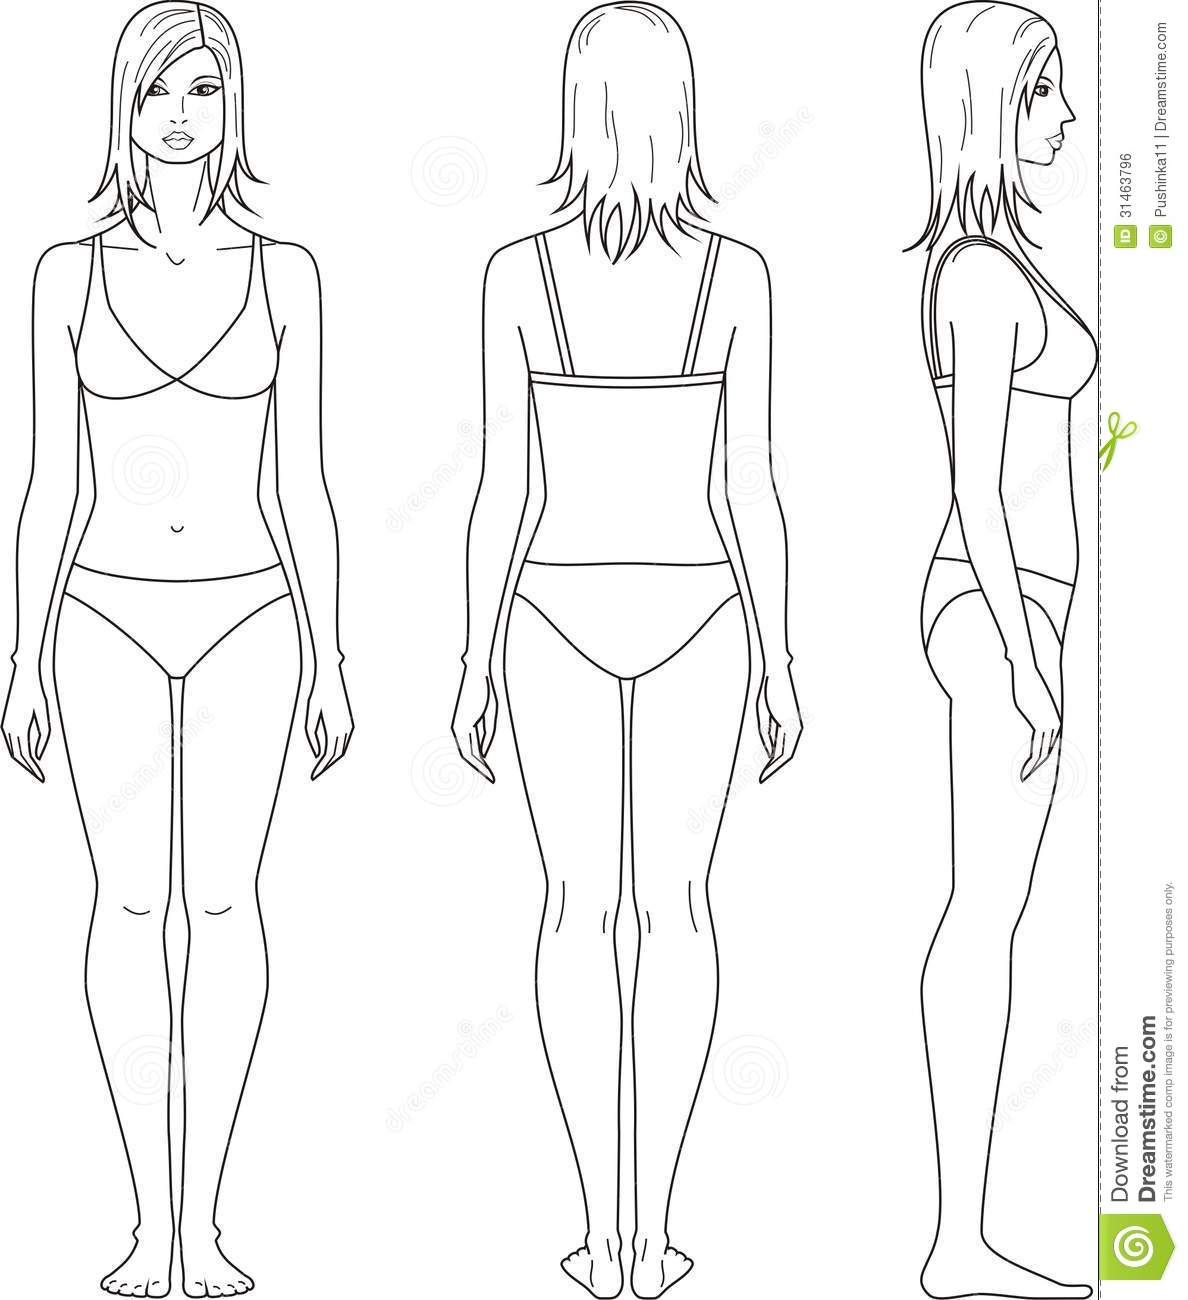 Female Template For Fashion Design Front Side Back